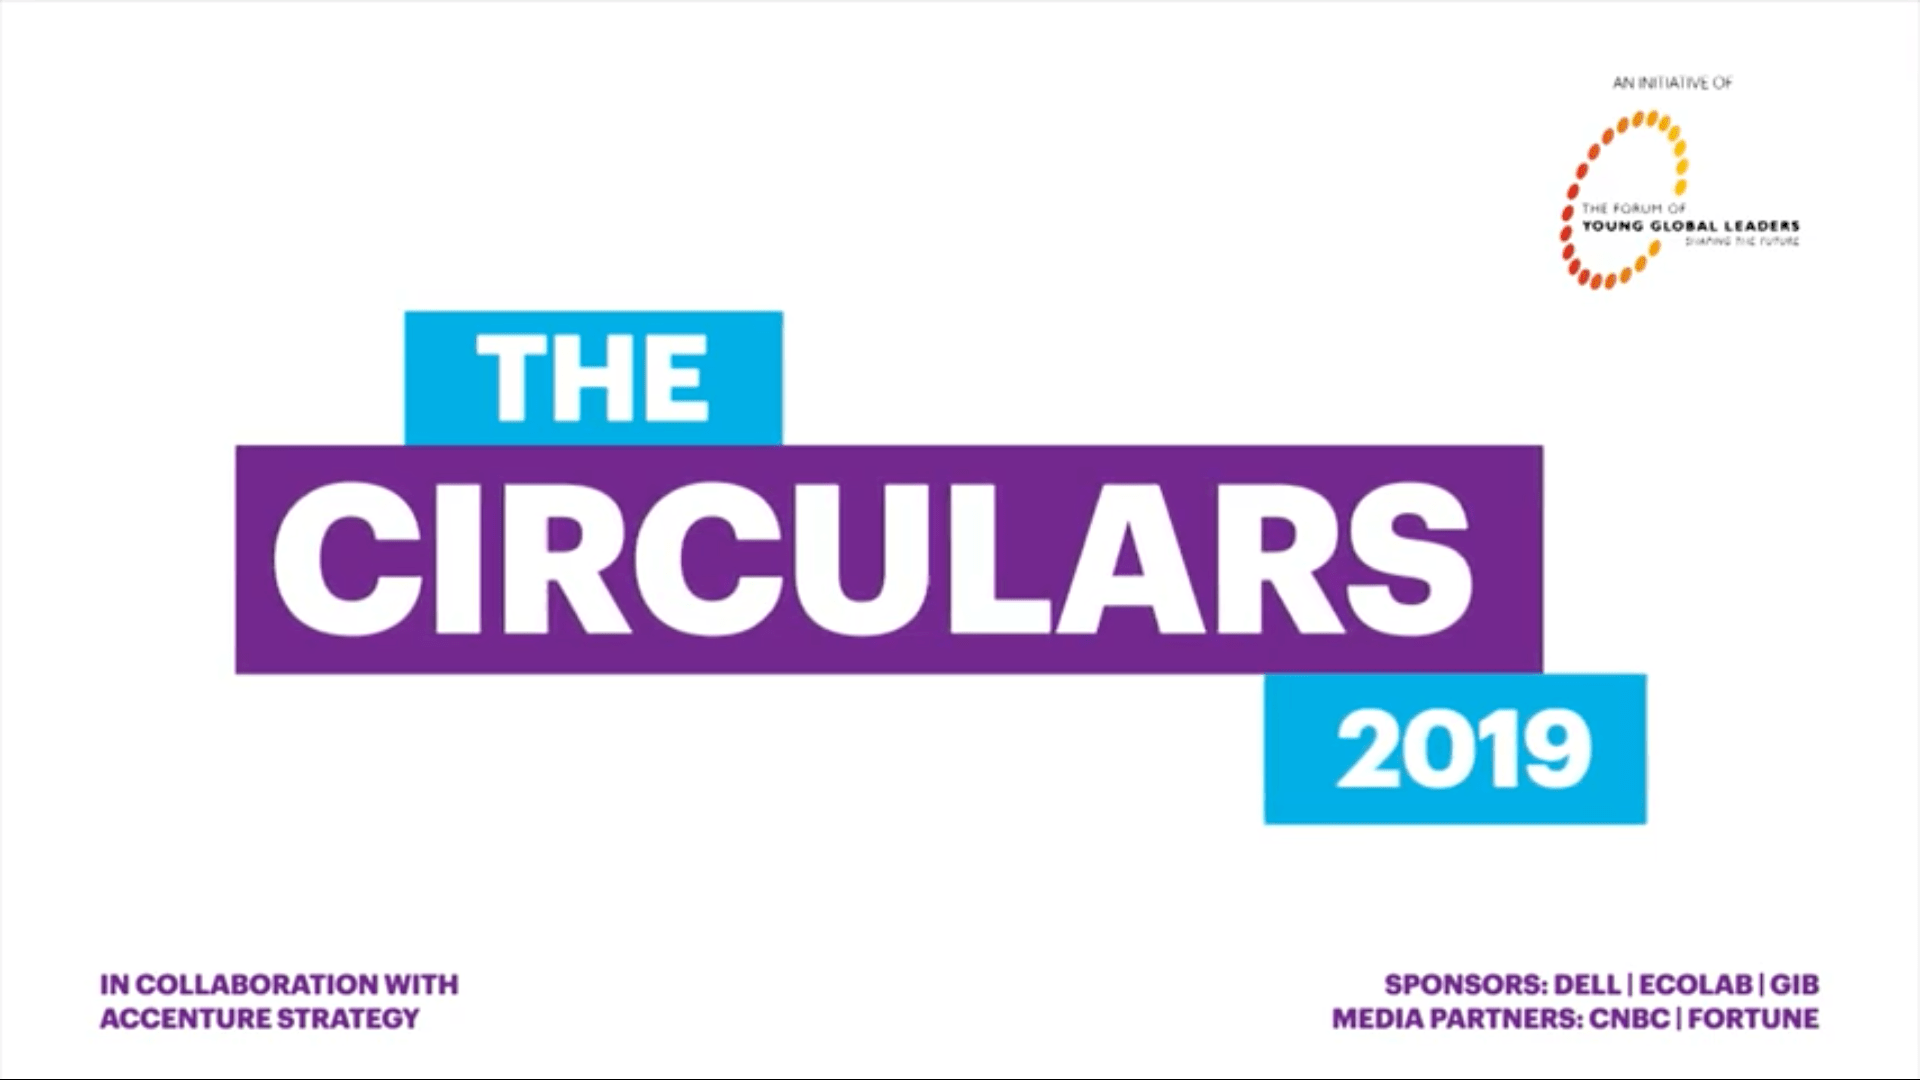 Vencedores do The Circulars 2019